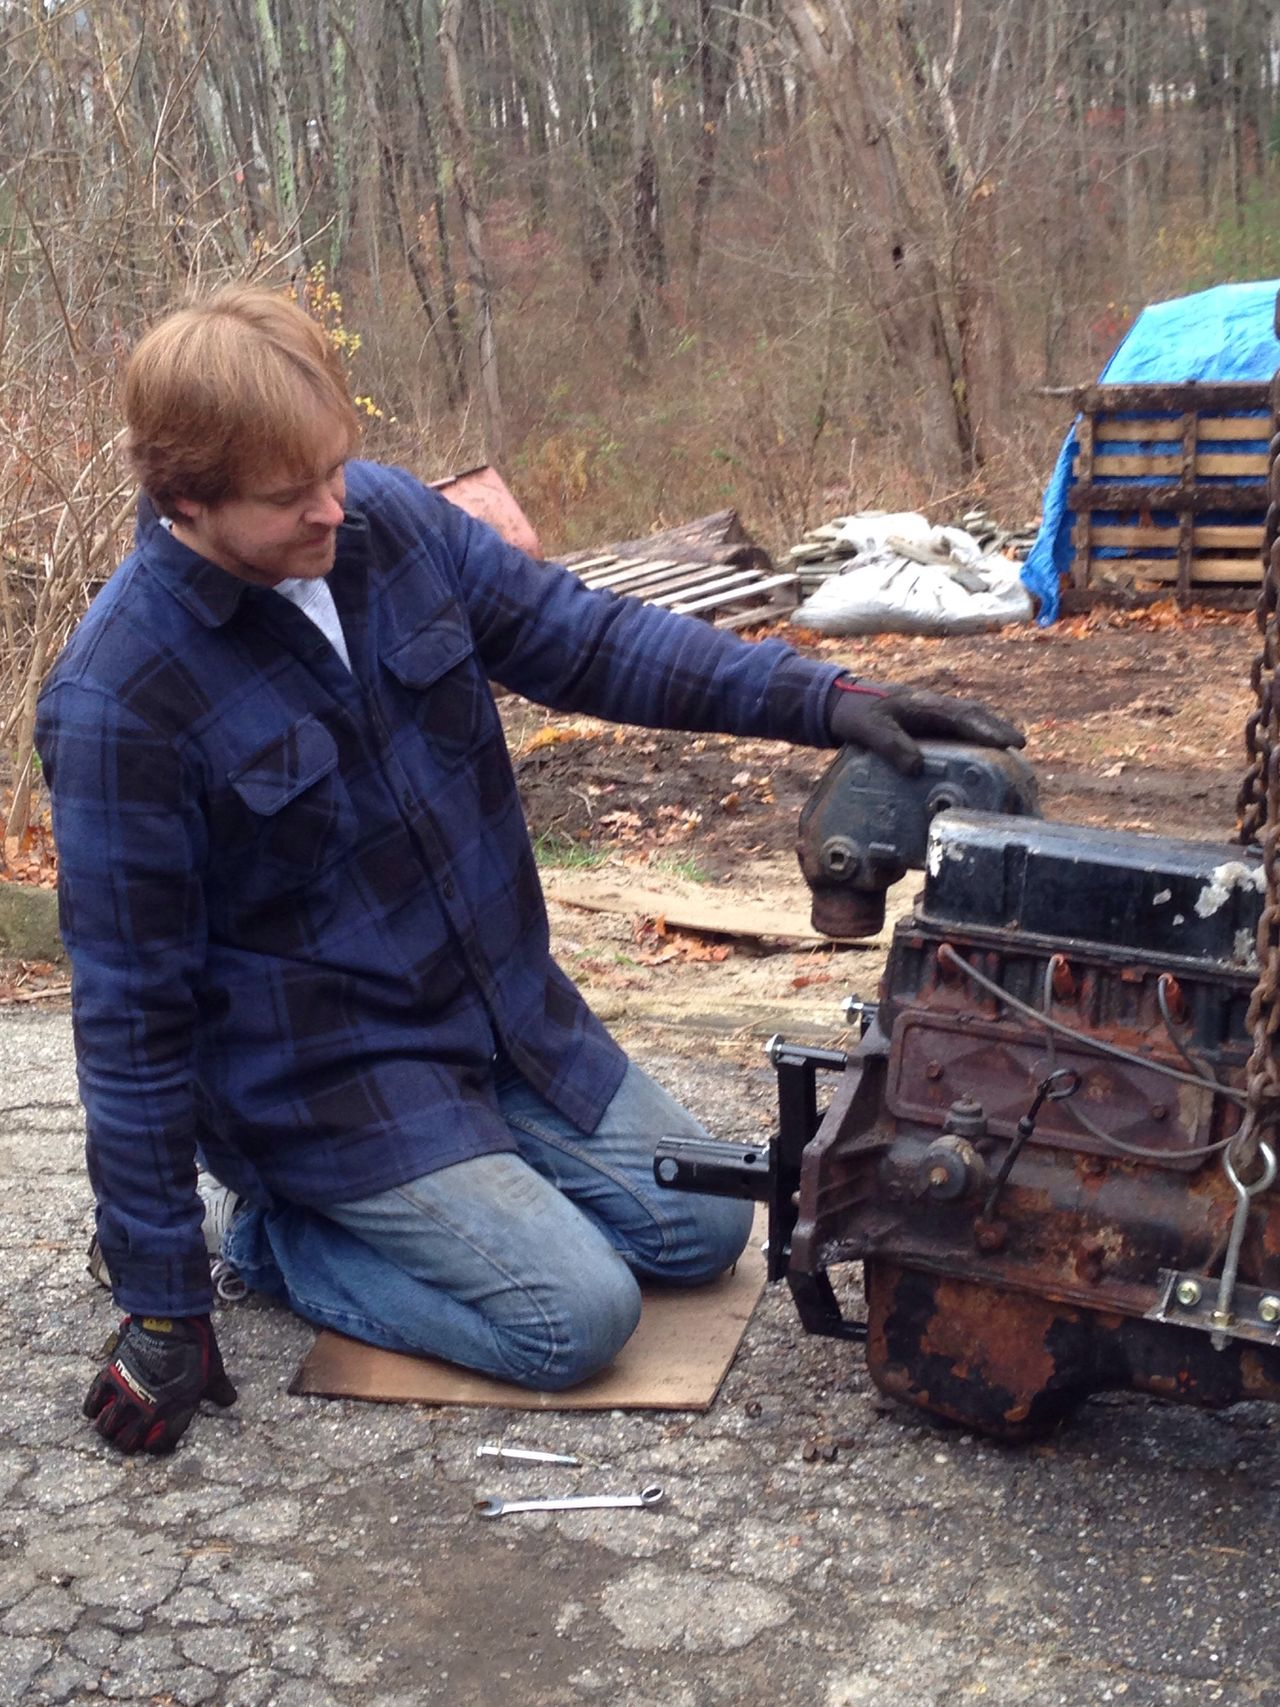 Real People One Person Mechanics Engine Repair Working Man My Man Ginger Hair Flannel Shirt